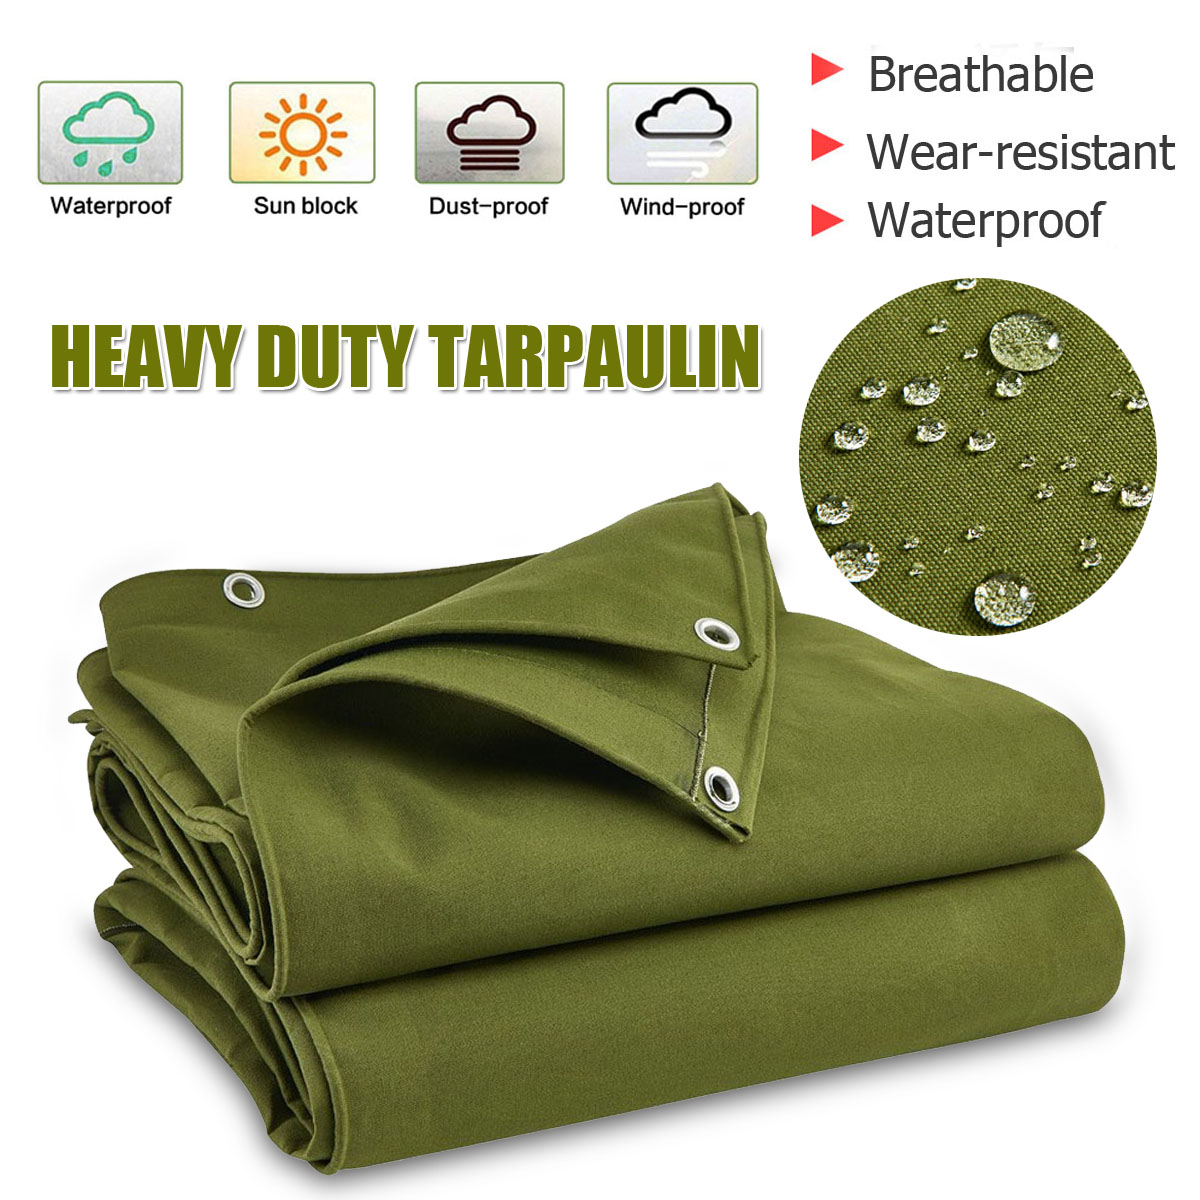 Large Heavy Duty Army Green Canvas Tarp Tarpaulin Sunshade Sun Blocked Waterproof Dustproof Outdoor Shelter Awning Accessories